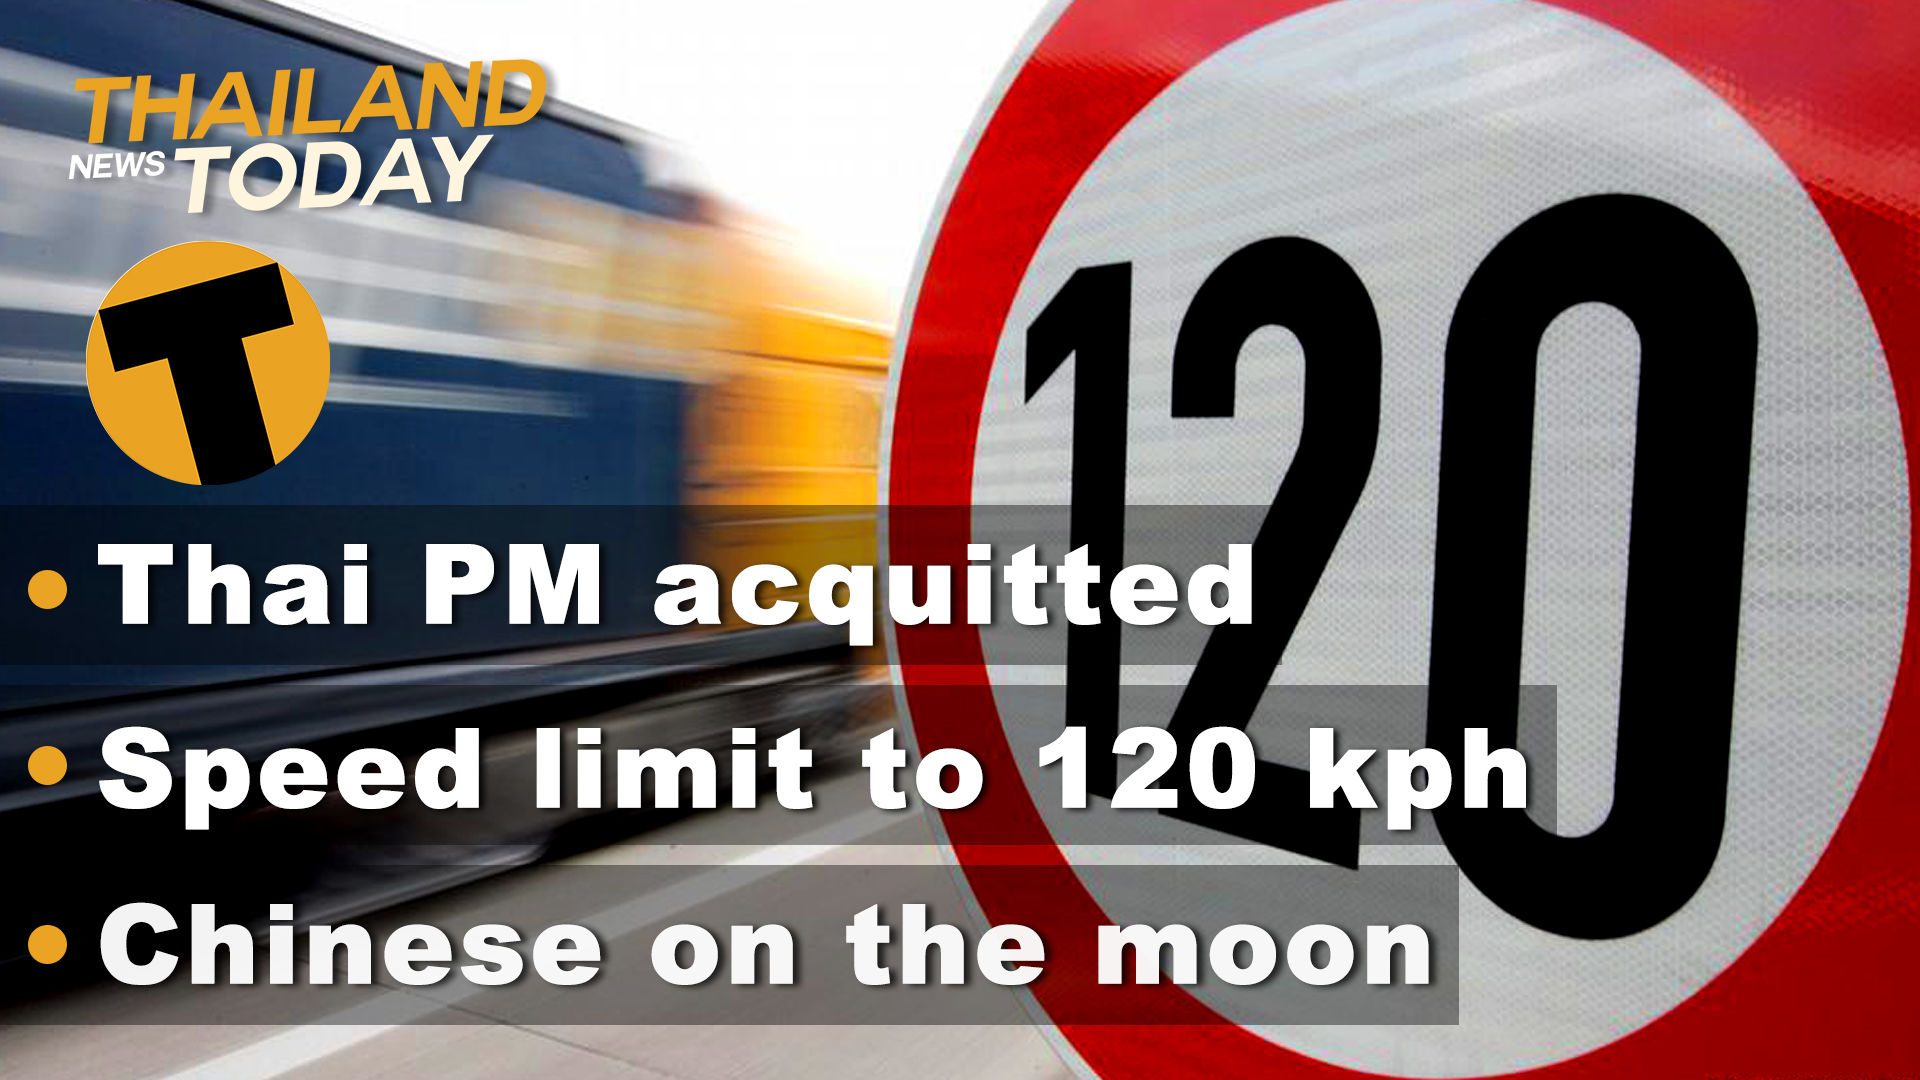 Thailand News Today | Prayut acquitted, Chinese probe, Speed limit 120 kph | December 2